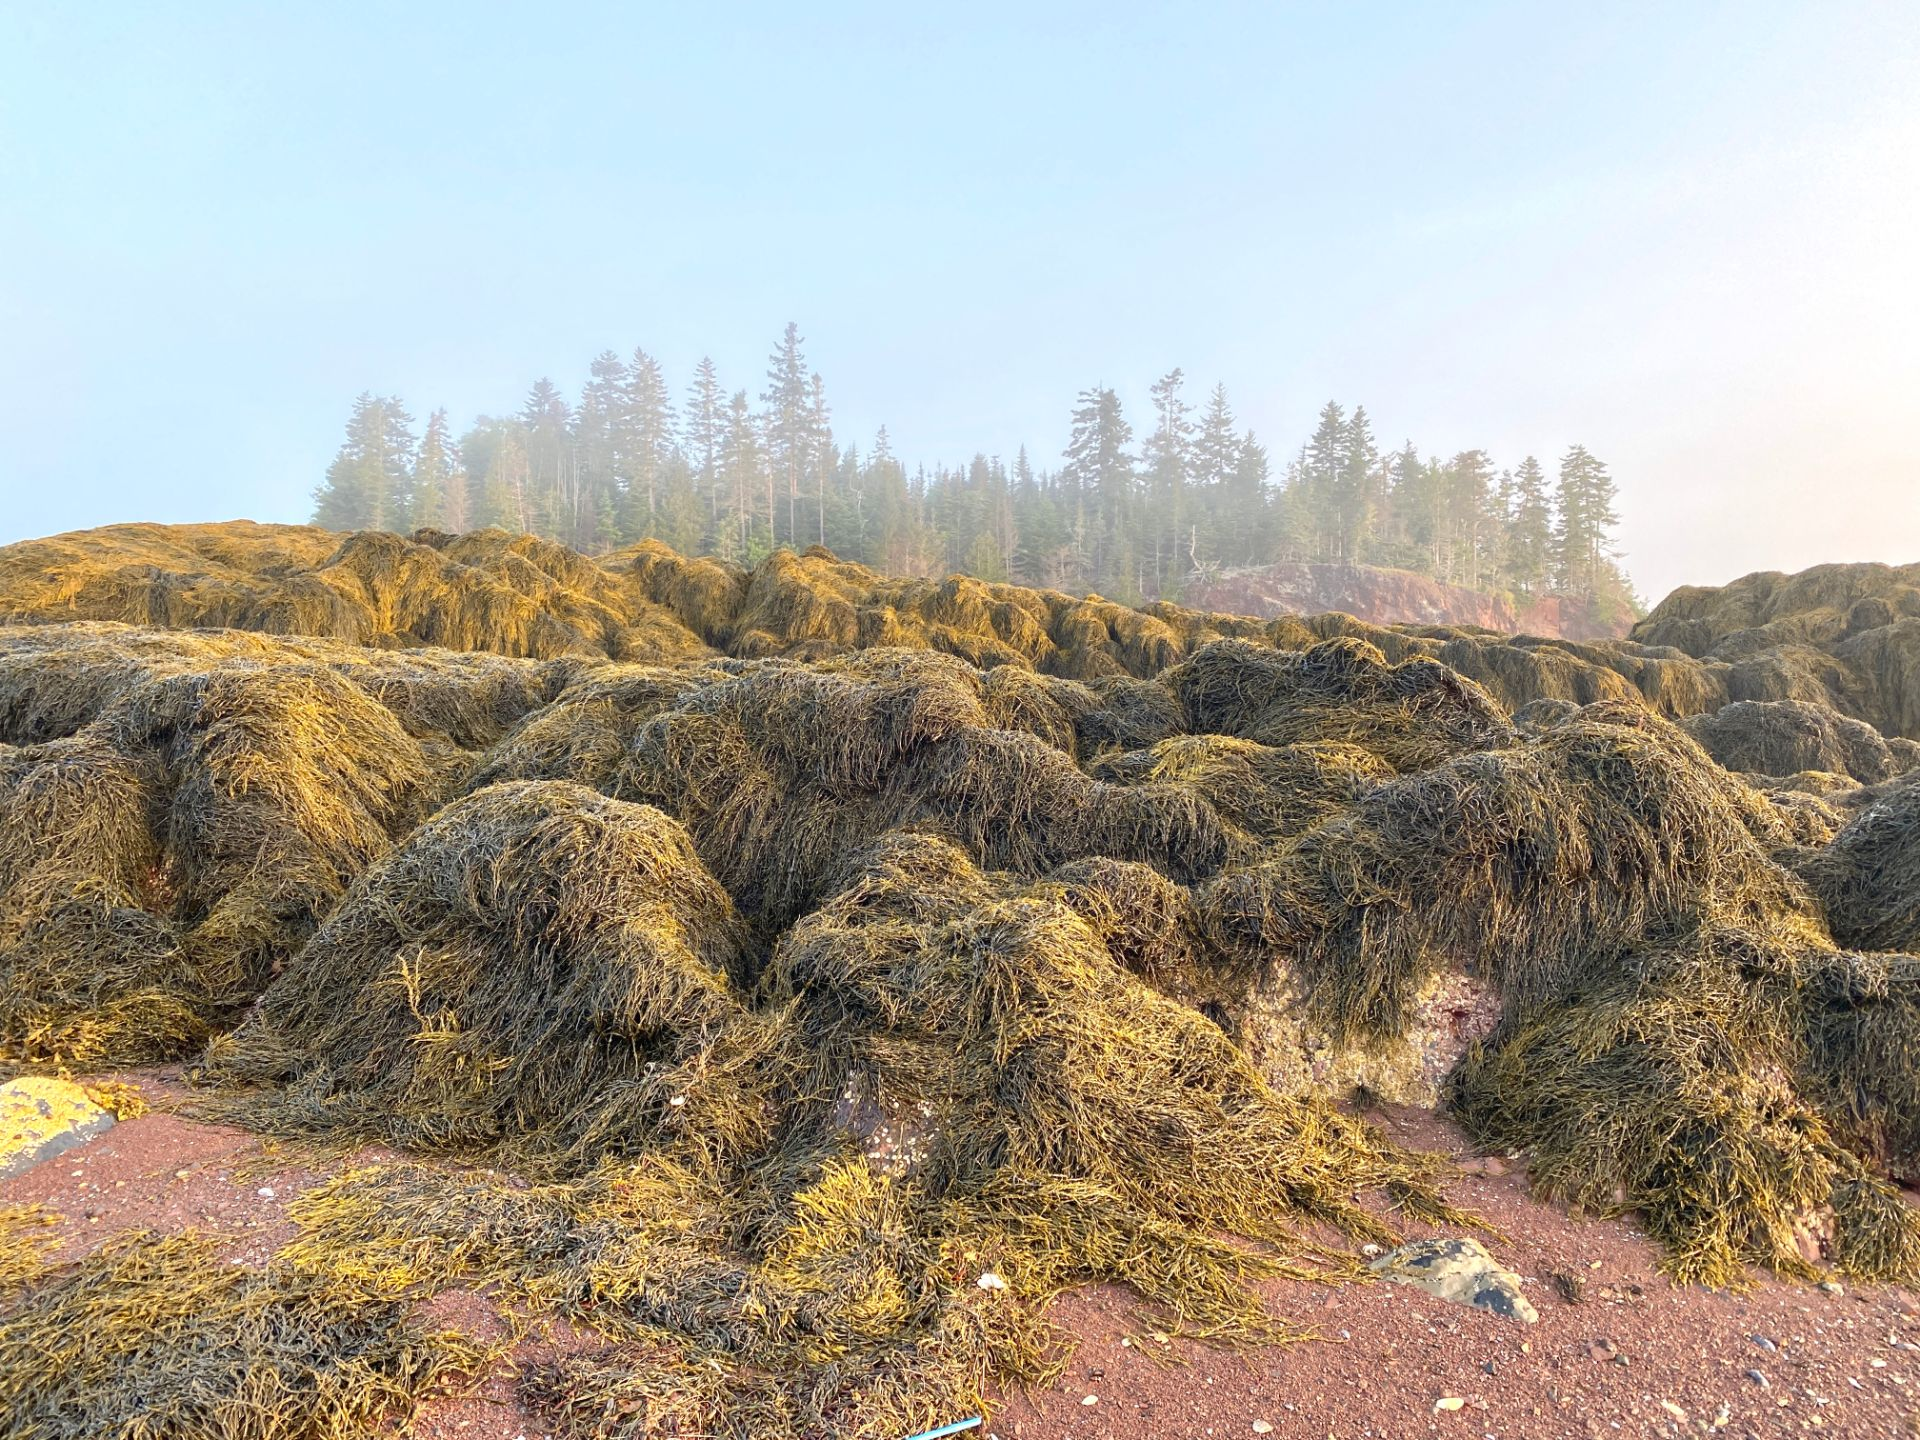 Rockweed at low tide